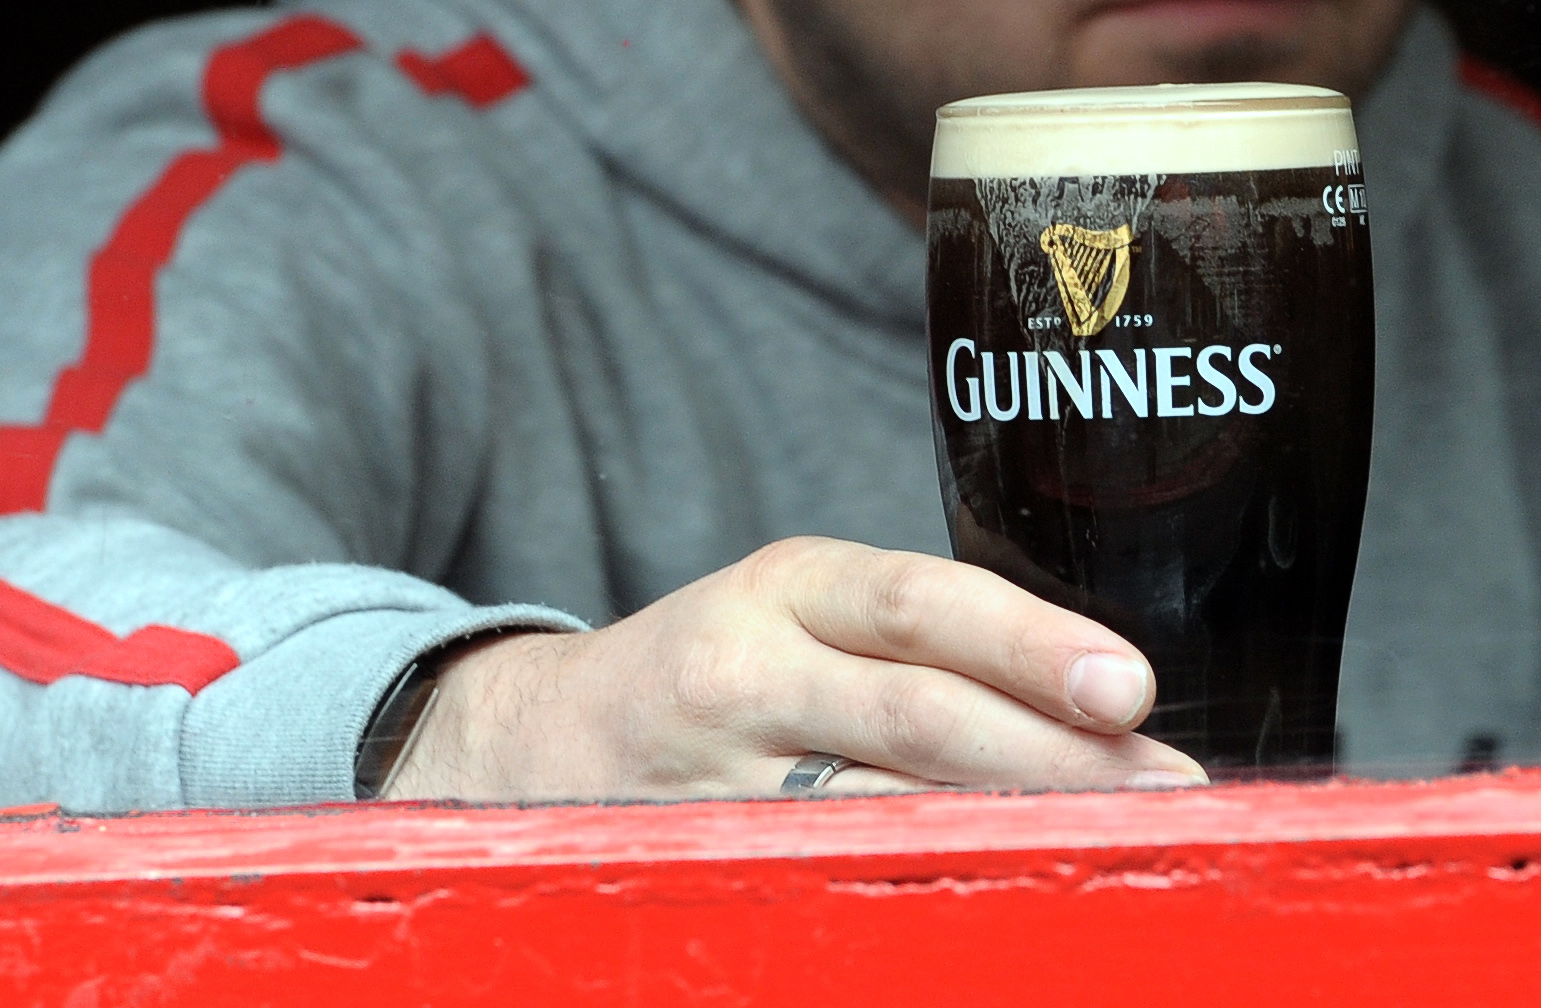 A man is pictured through the window of a bar drinking a pint of Guinness in The Temple Bar area of Dublin, Ireland on May 20, 2011.